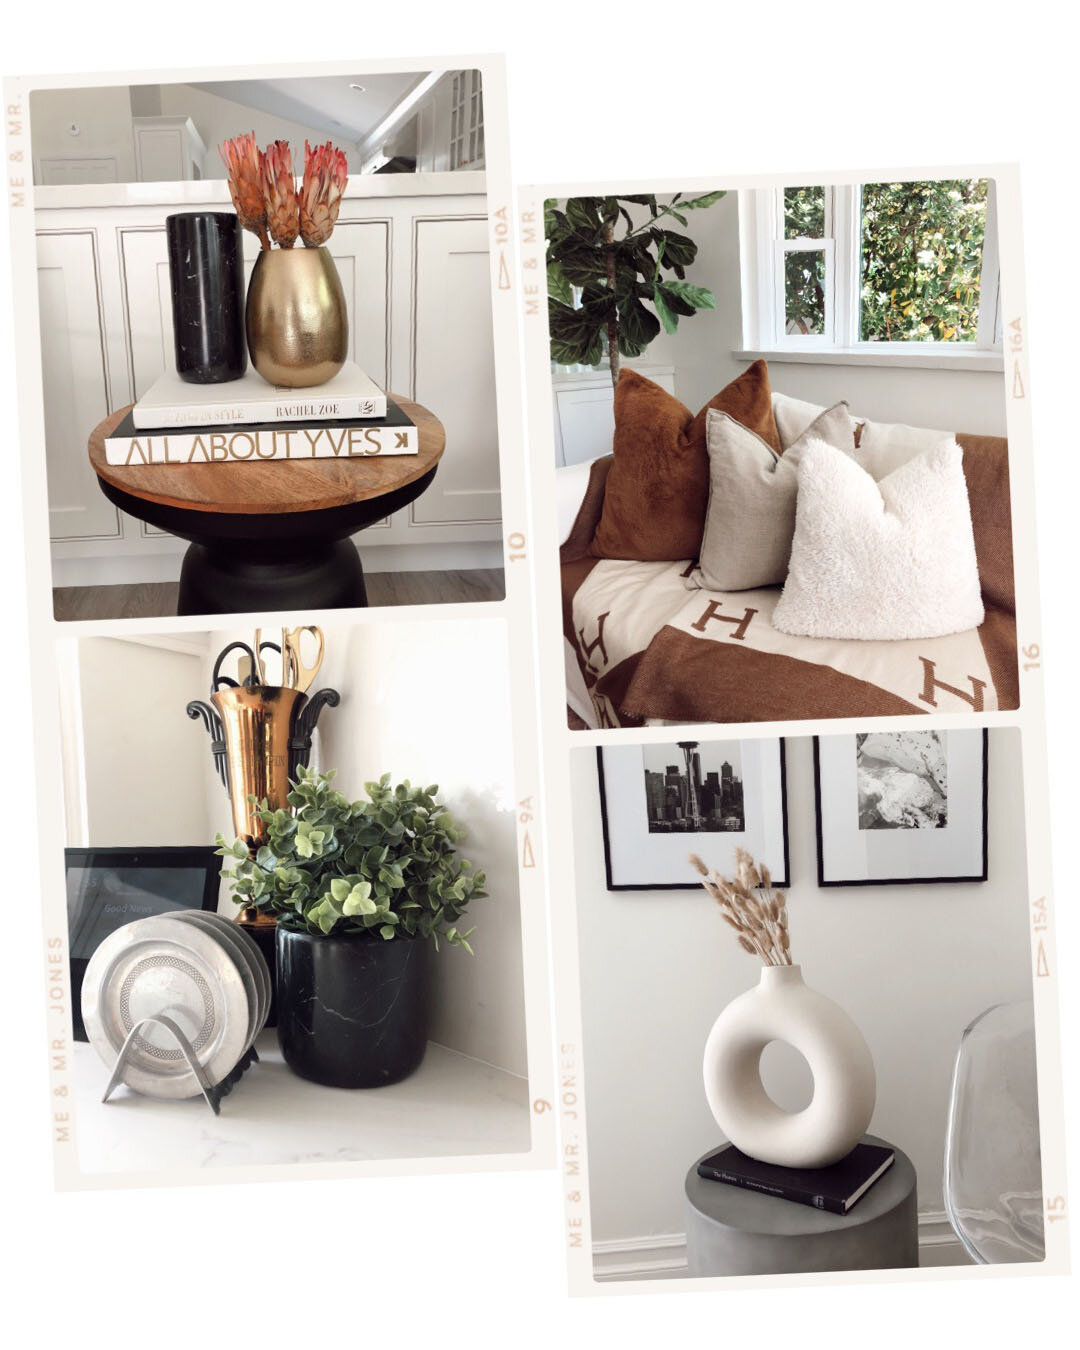 Affordable H M Home Decor Finds Me And Mr Jones,When A Stranger Calls House Address